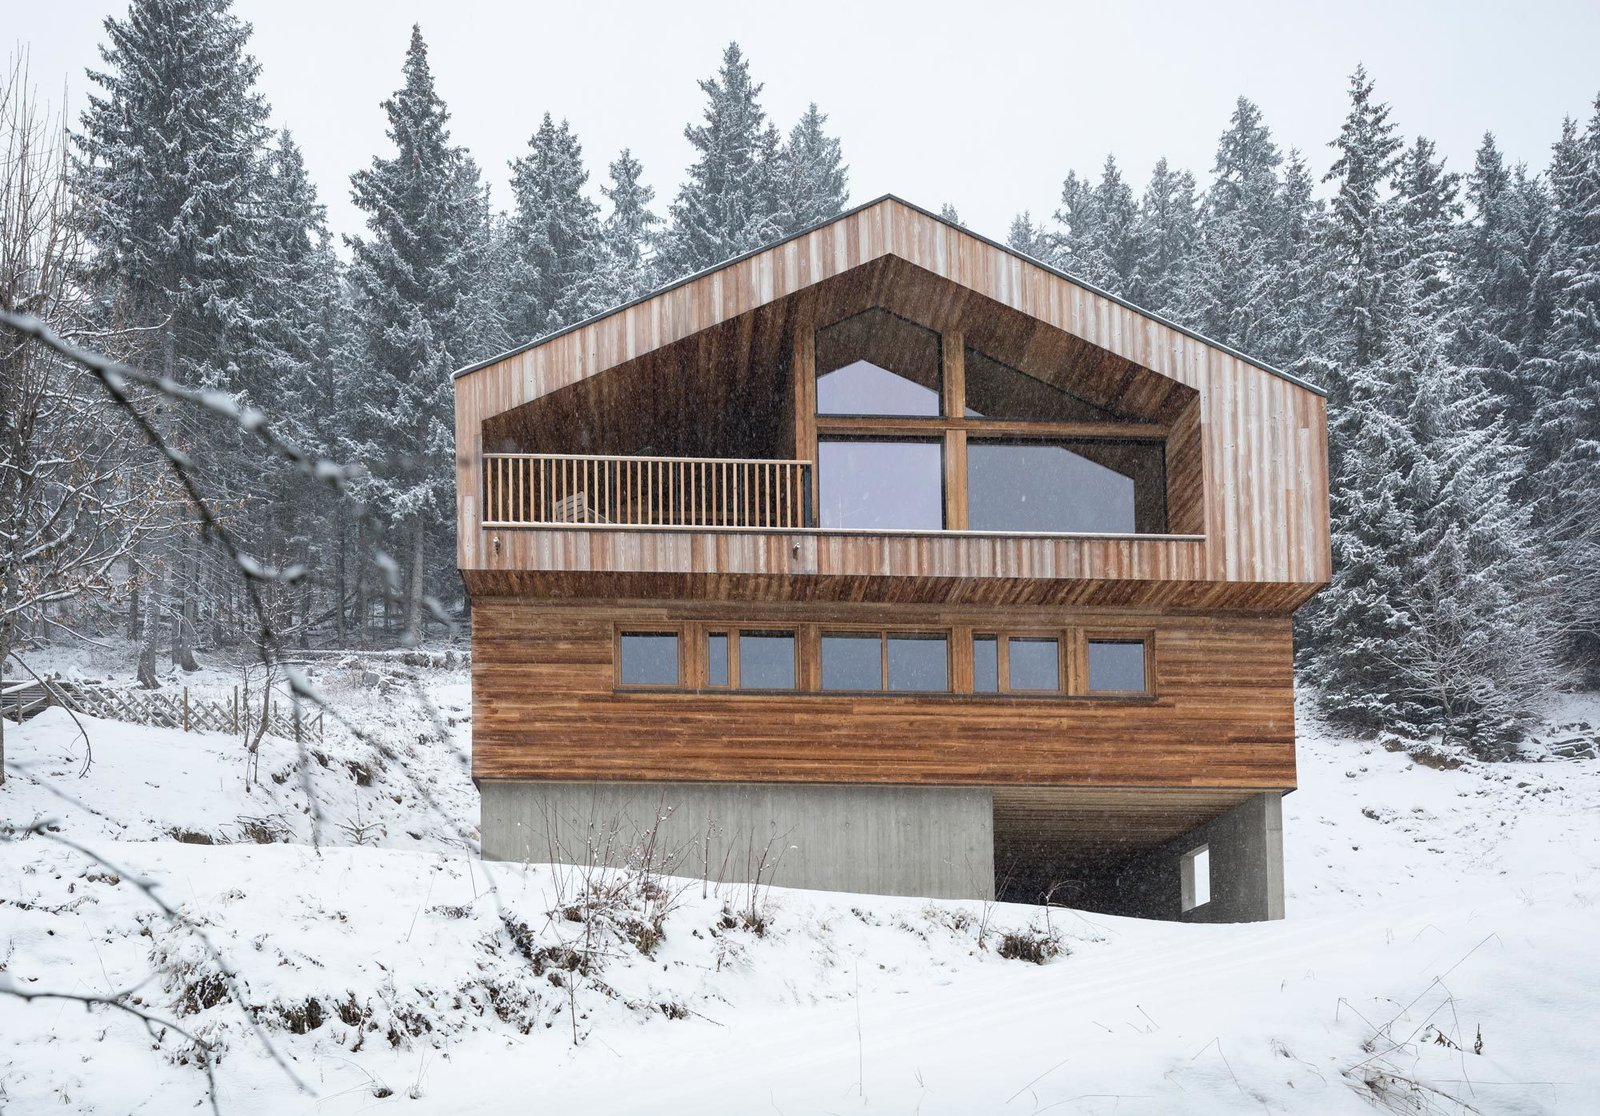 Tagged: Outdoor, Slope, Woodland, and Trees. Mountain House by studio razavi architecture